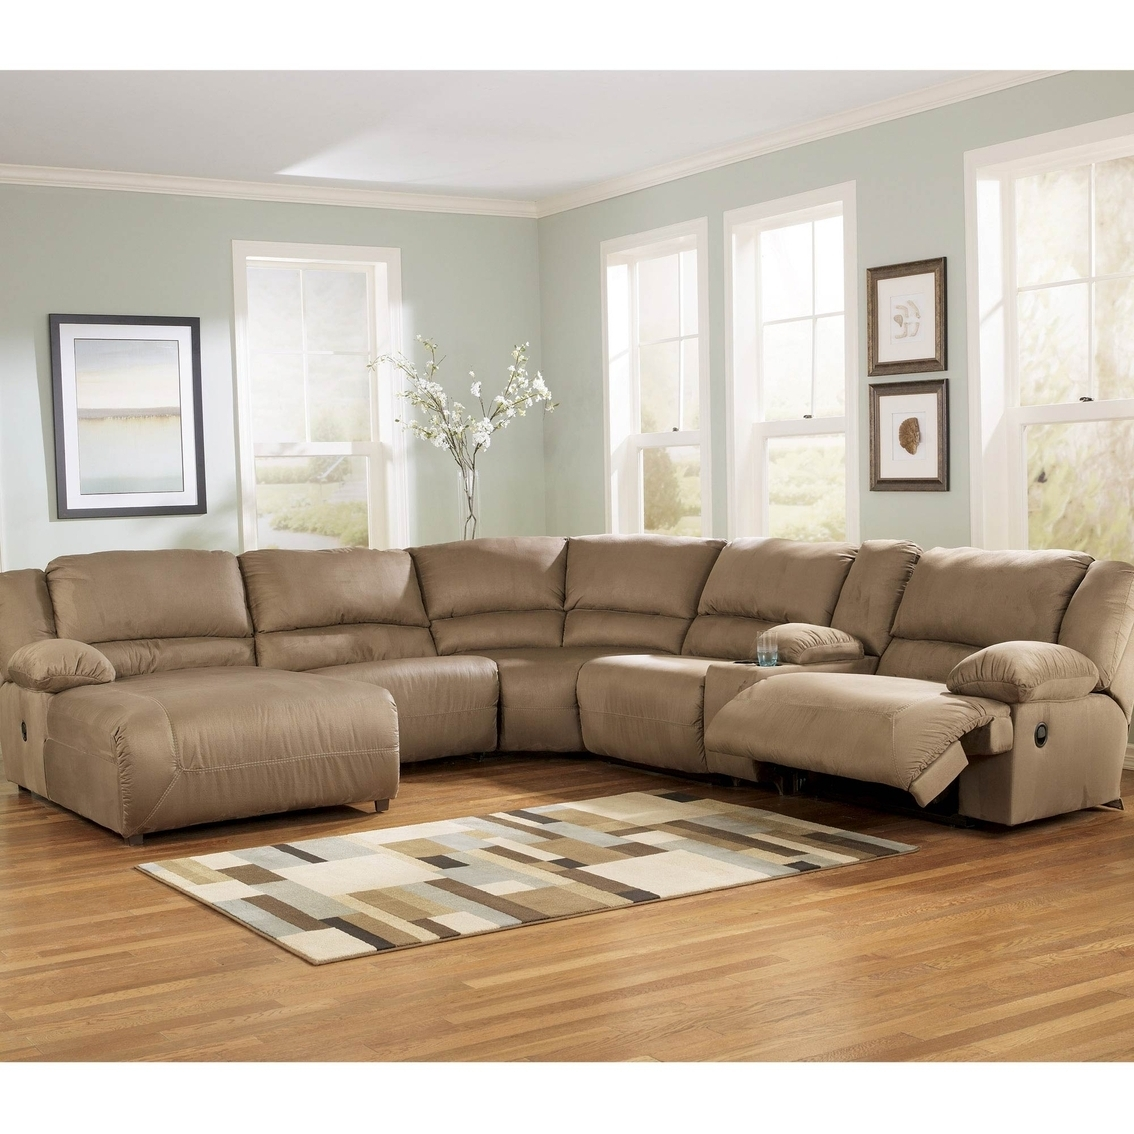 Ashley Furniture Sectionals With Chaise With 2018 Ashley Hogan Sectional With Two Recliners And Right Arm Facing (View 15 of 15)